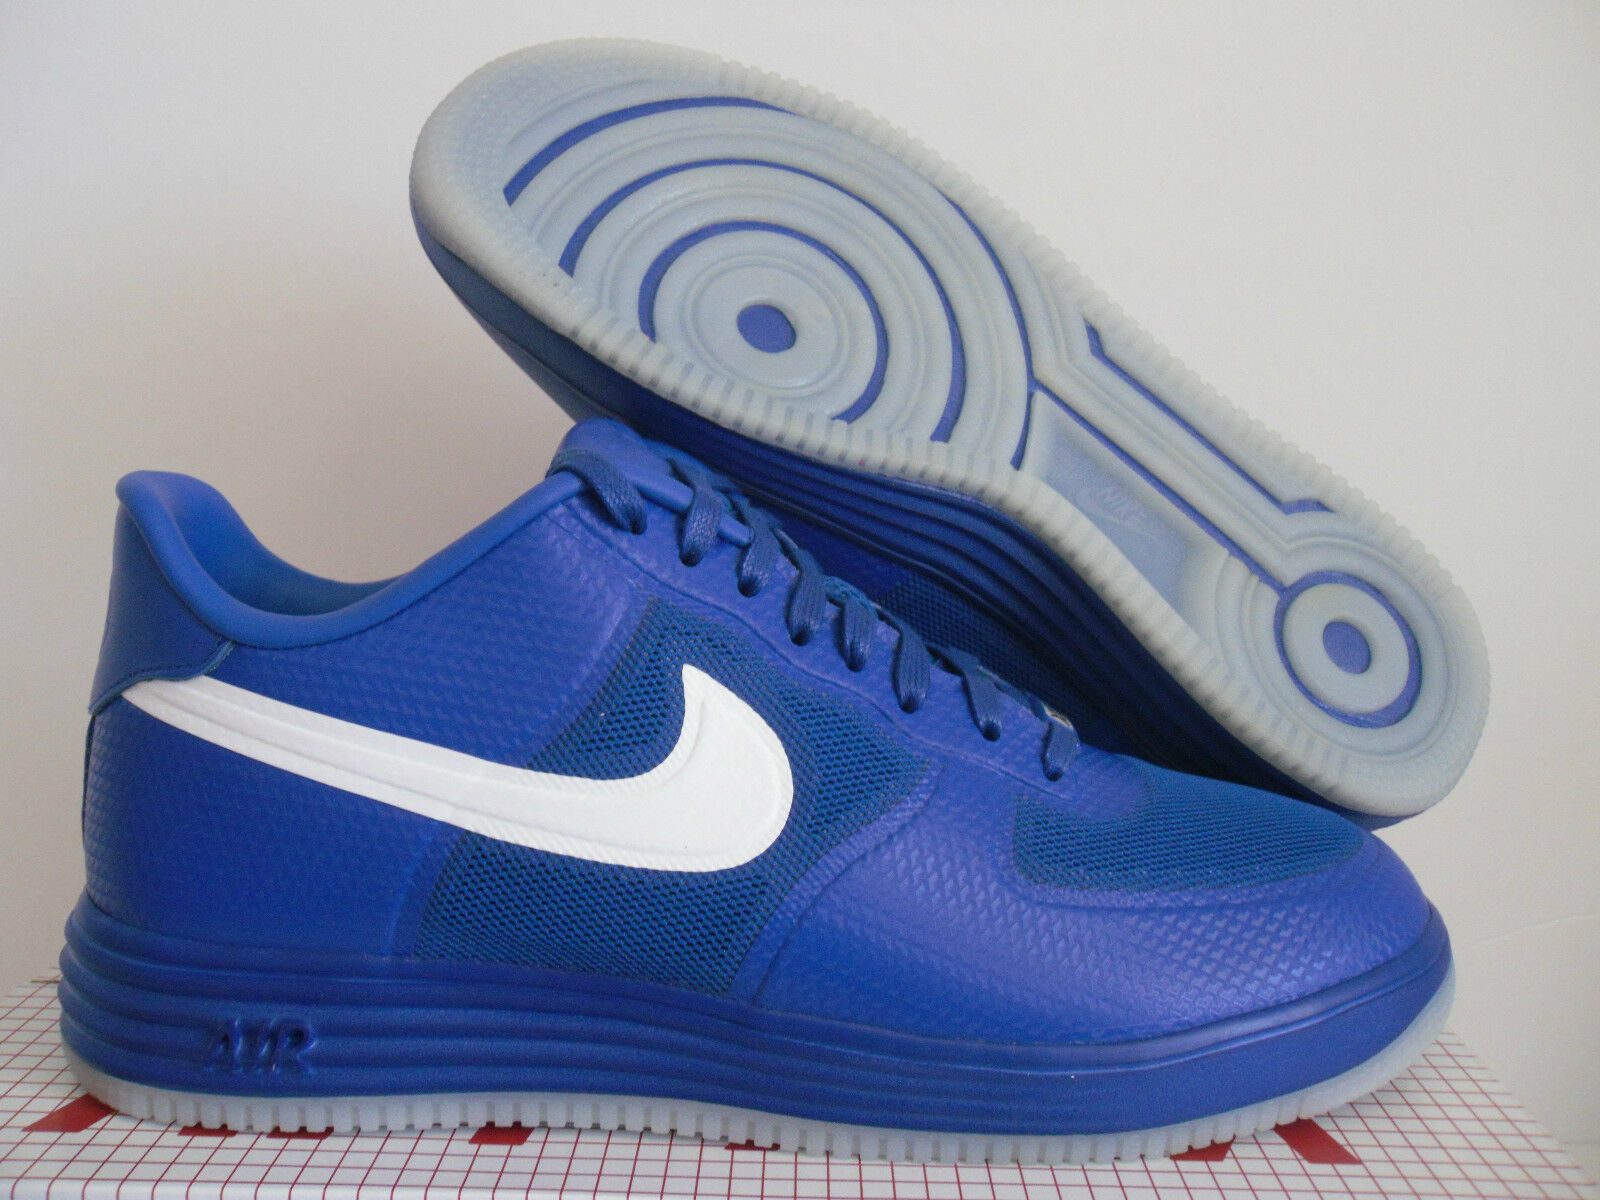 NIKE LUNAR FORCE 1 FUSE NRG GAME ROYAL blueE-WHITE SZ 11.5 [573980-400]